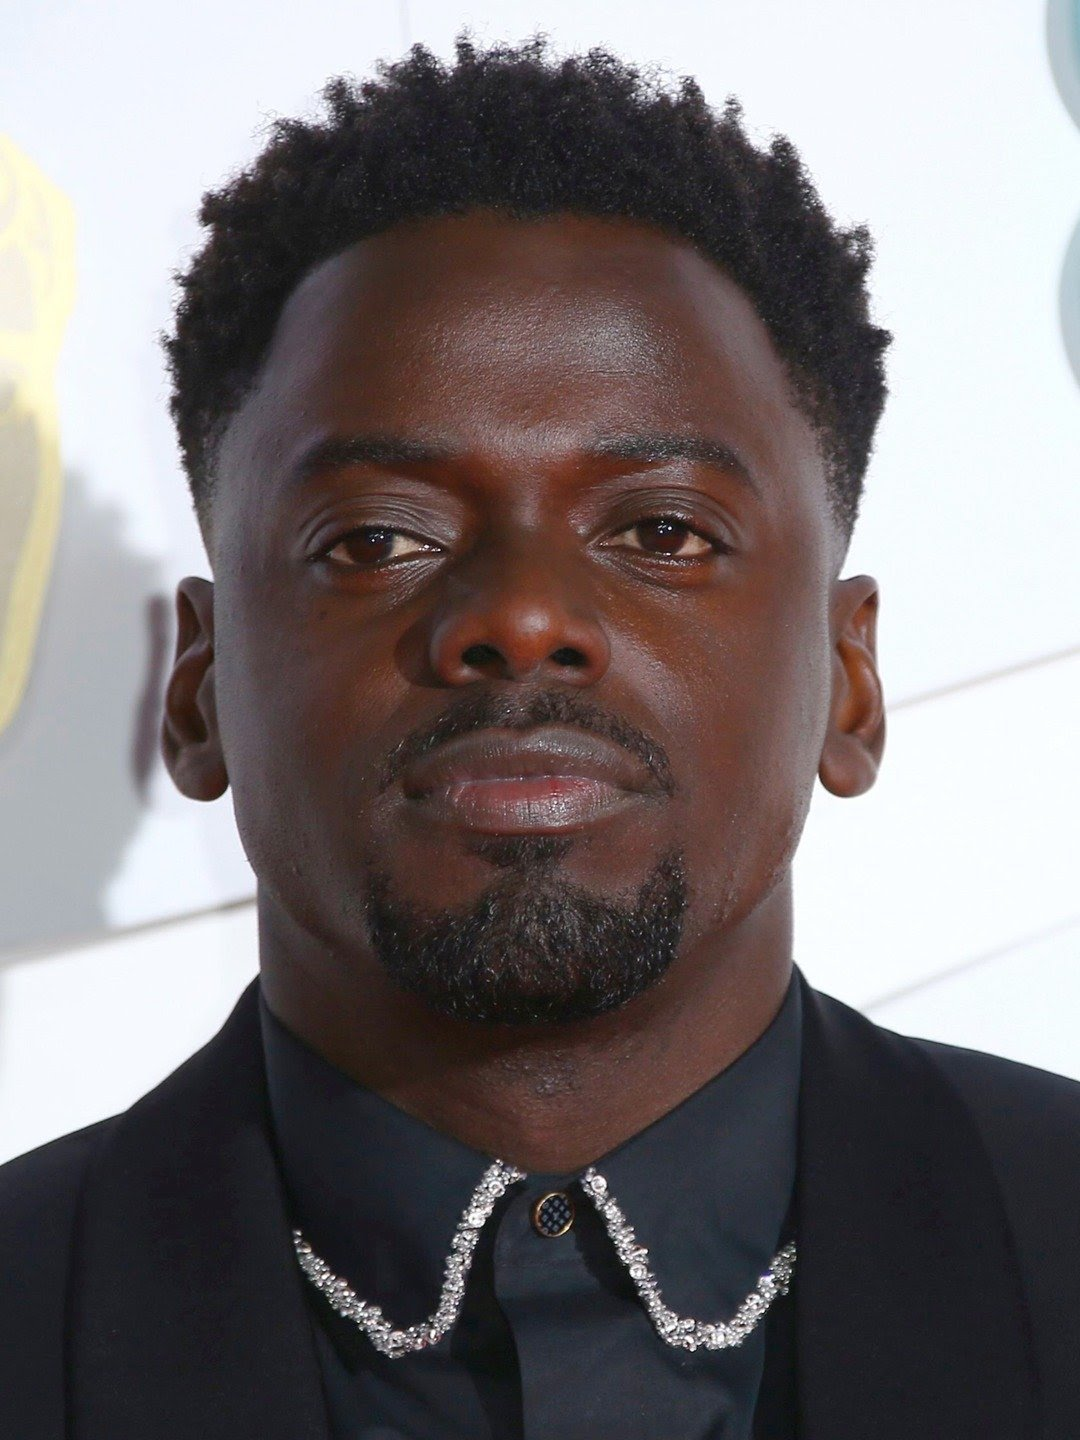 Daniel Kaluuya Family Tree, Siblings, Father, Mother, Wife, Girlfriend, Height